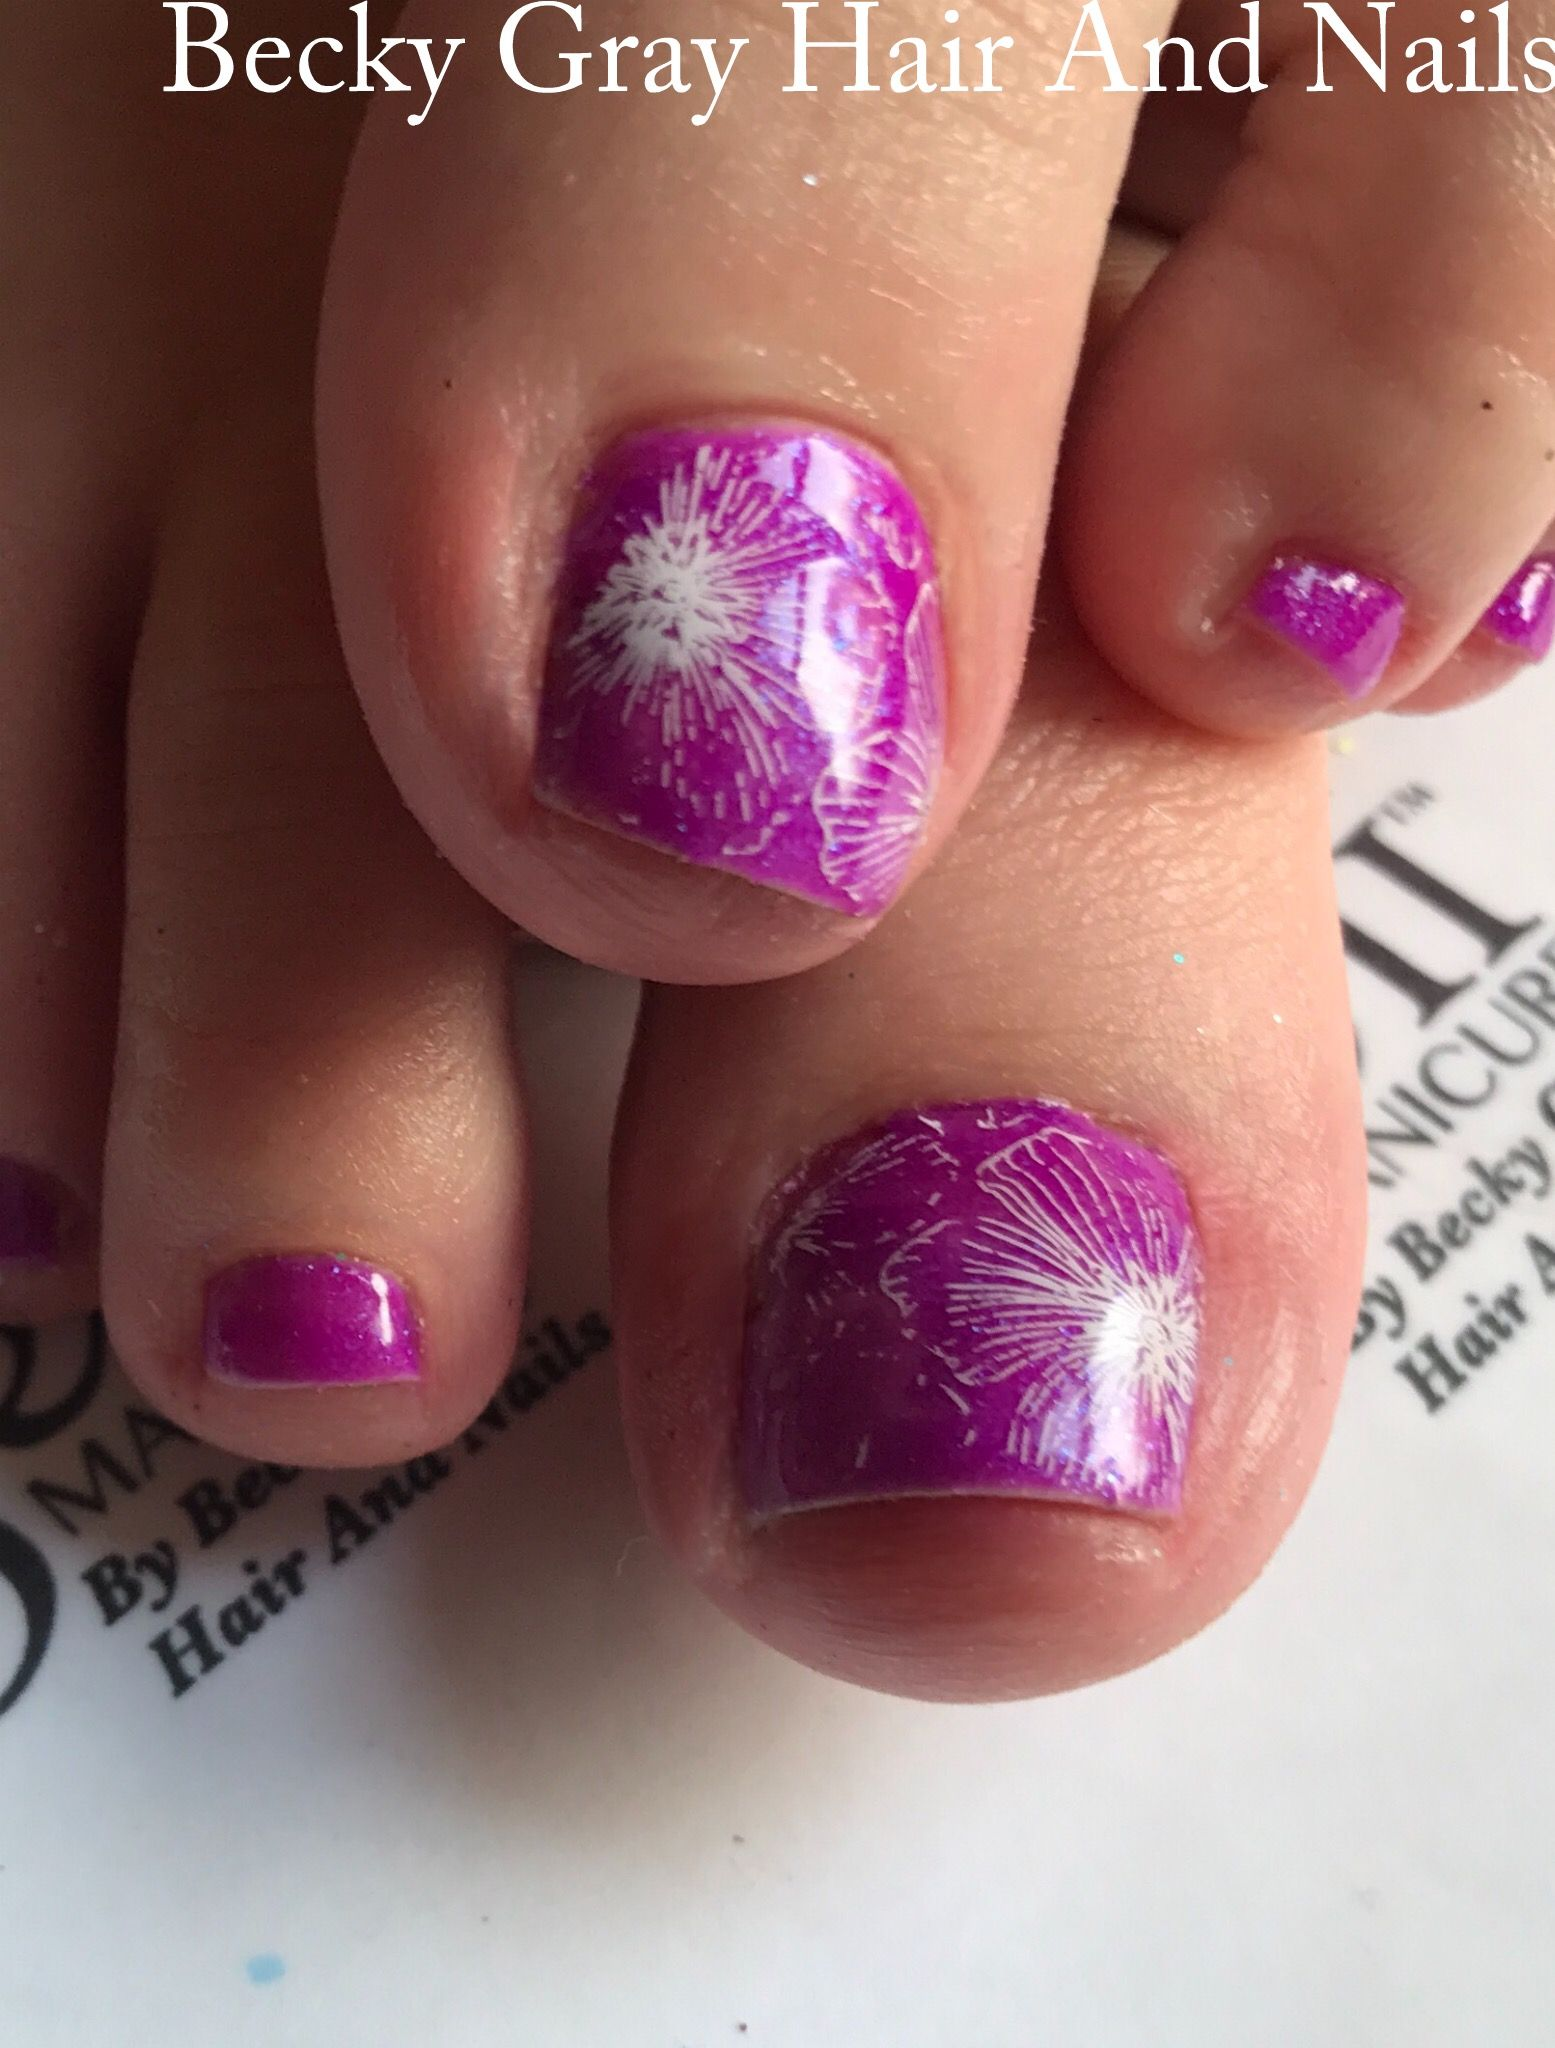 #gelii #pedicure electric Jelly fish #gel_two #nailart #showscratch #scratchmagazine